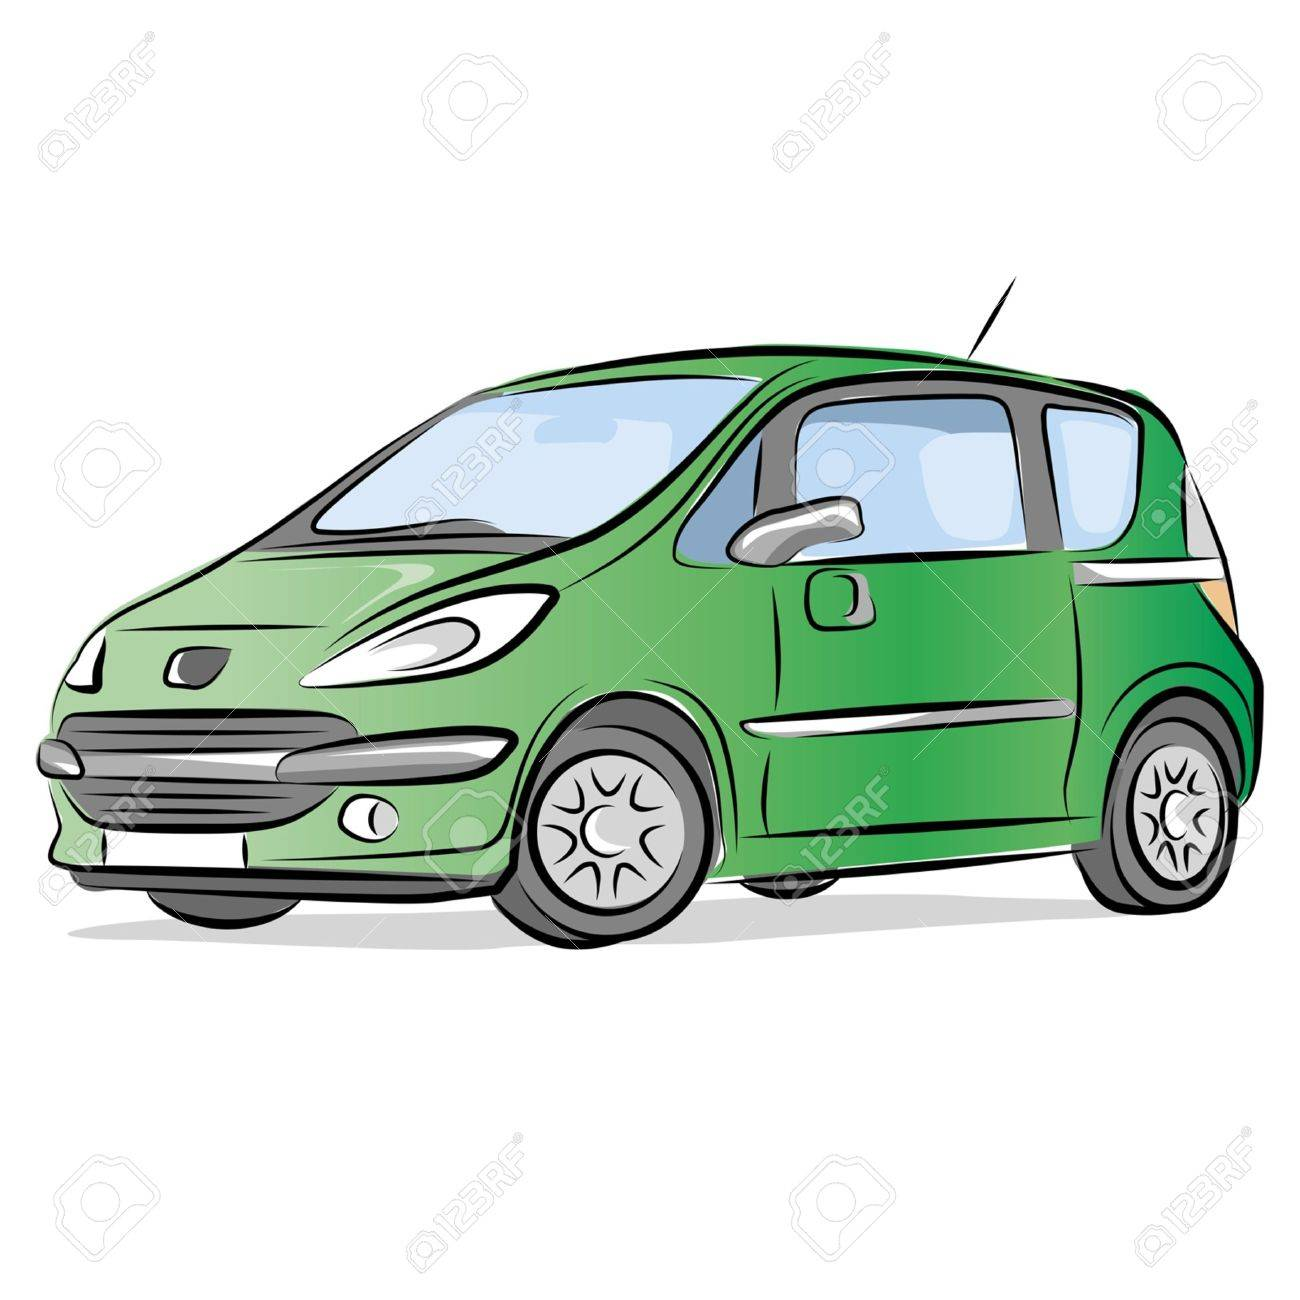 Small Car Drawing at GetDrawings.com | Free for personal use Small ...